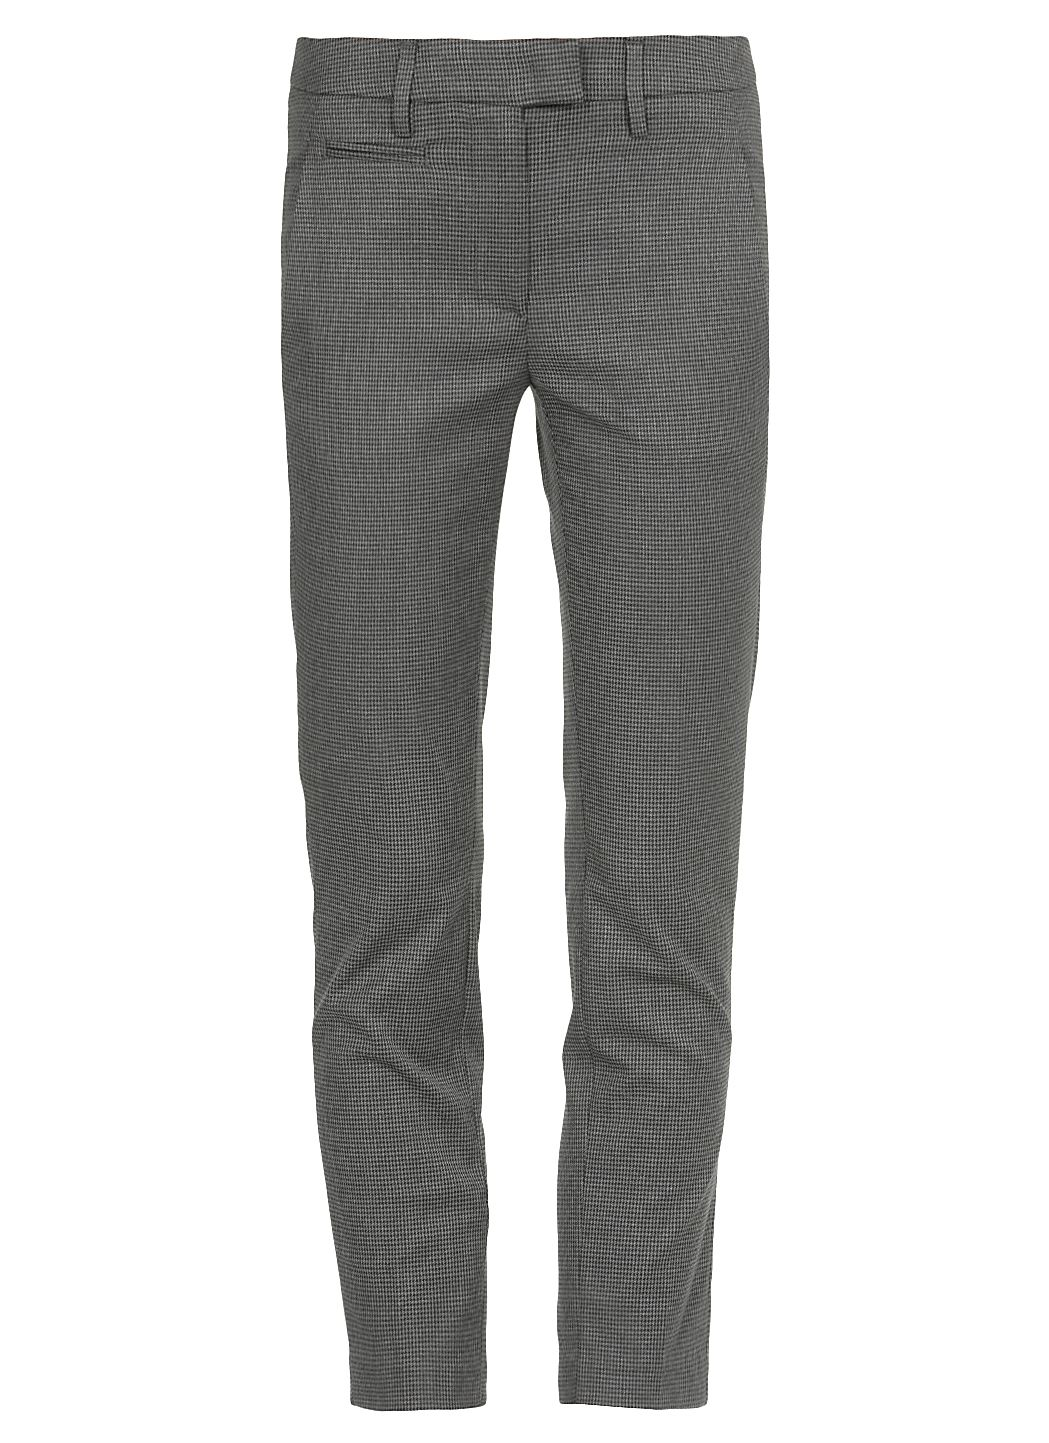 Perfect trousers